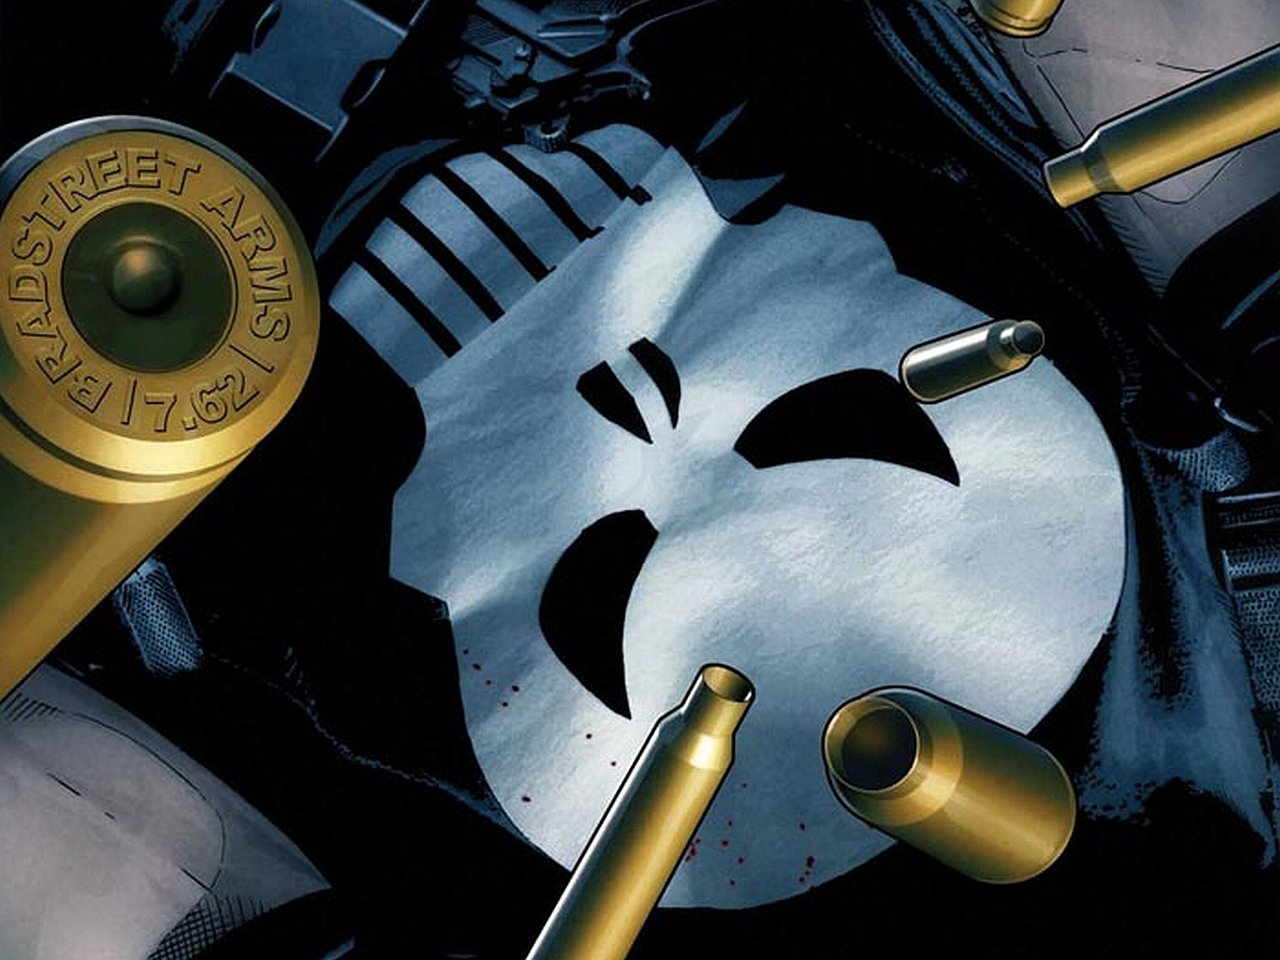 The Punisher Computer Wallpapers, Desktop Backgrounds | 1280x960 | ID ...